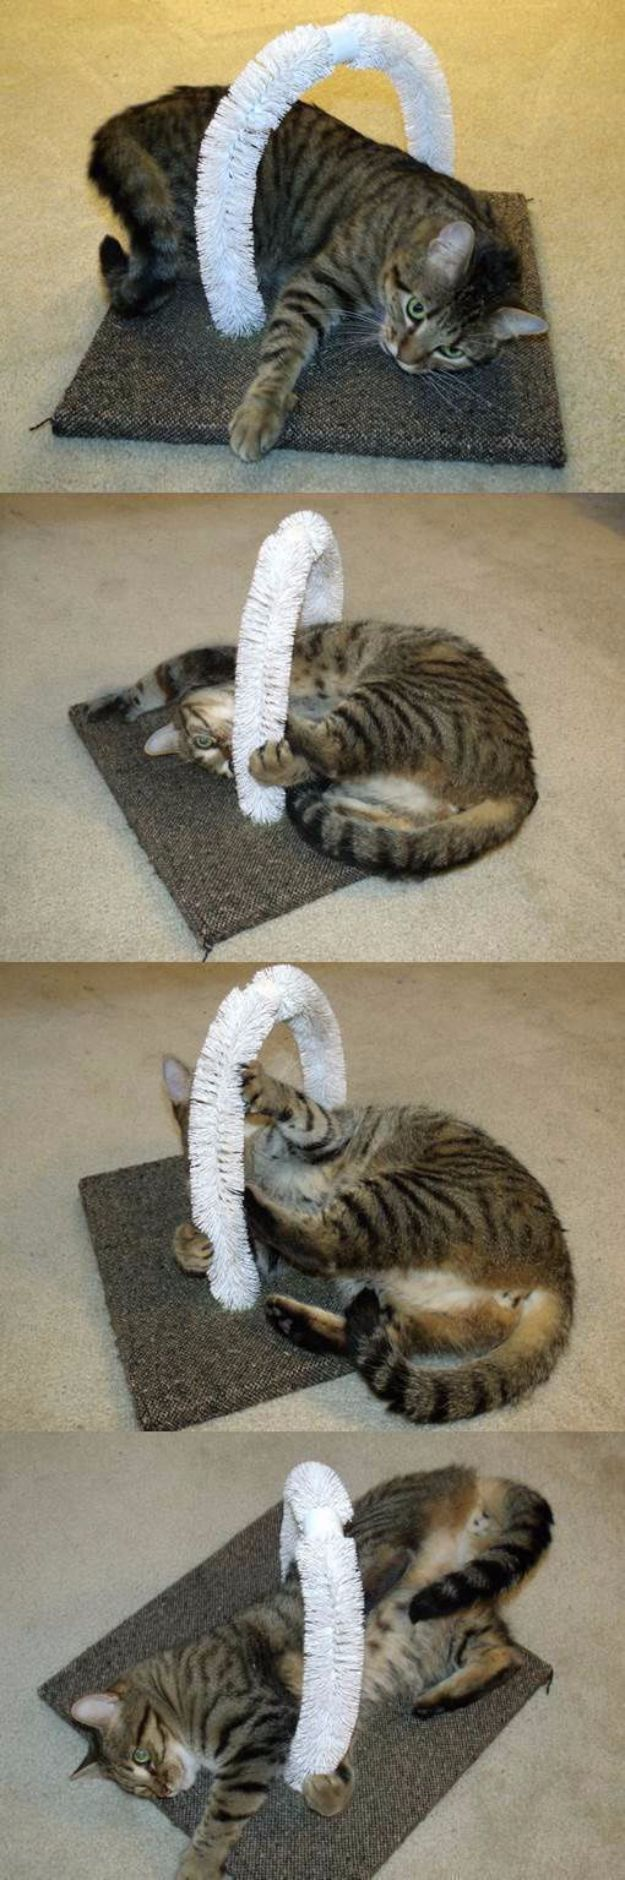 DIY Cat Hacks - DIY Self PEtting Station For Your Cats - Tips and Tricks Ideas for Cat Beds and Toys, Homemade Remedies for Fleas and Scratching - Do It Yourself Cat Treat Recips, Food and Gear for Your Pet - Cool Gifts for Cats http://diyjoy.com/diy-cat-hacks